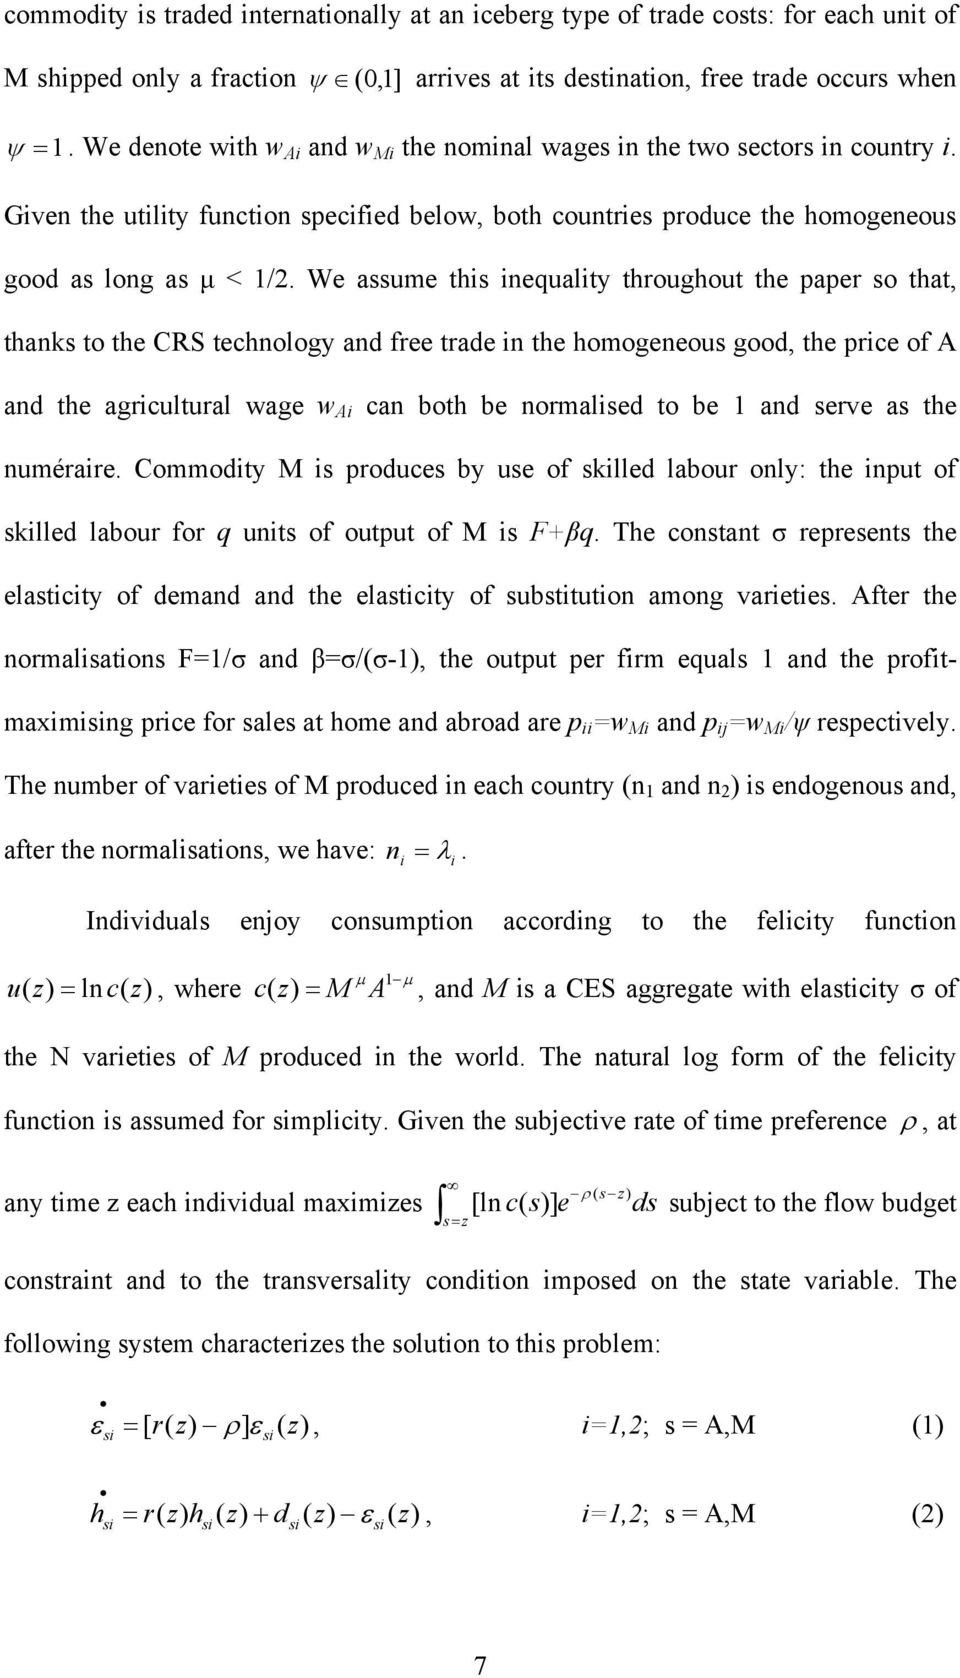 We assume this inequality throughout the paper so that, thanks to the CRS technology and free trade in the homogeneous good, the price of A and the agricultural wage w Ai can both be normalised to be